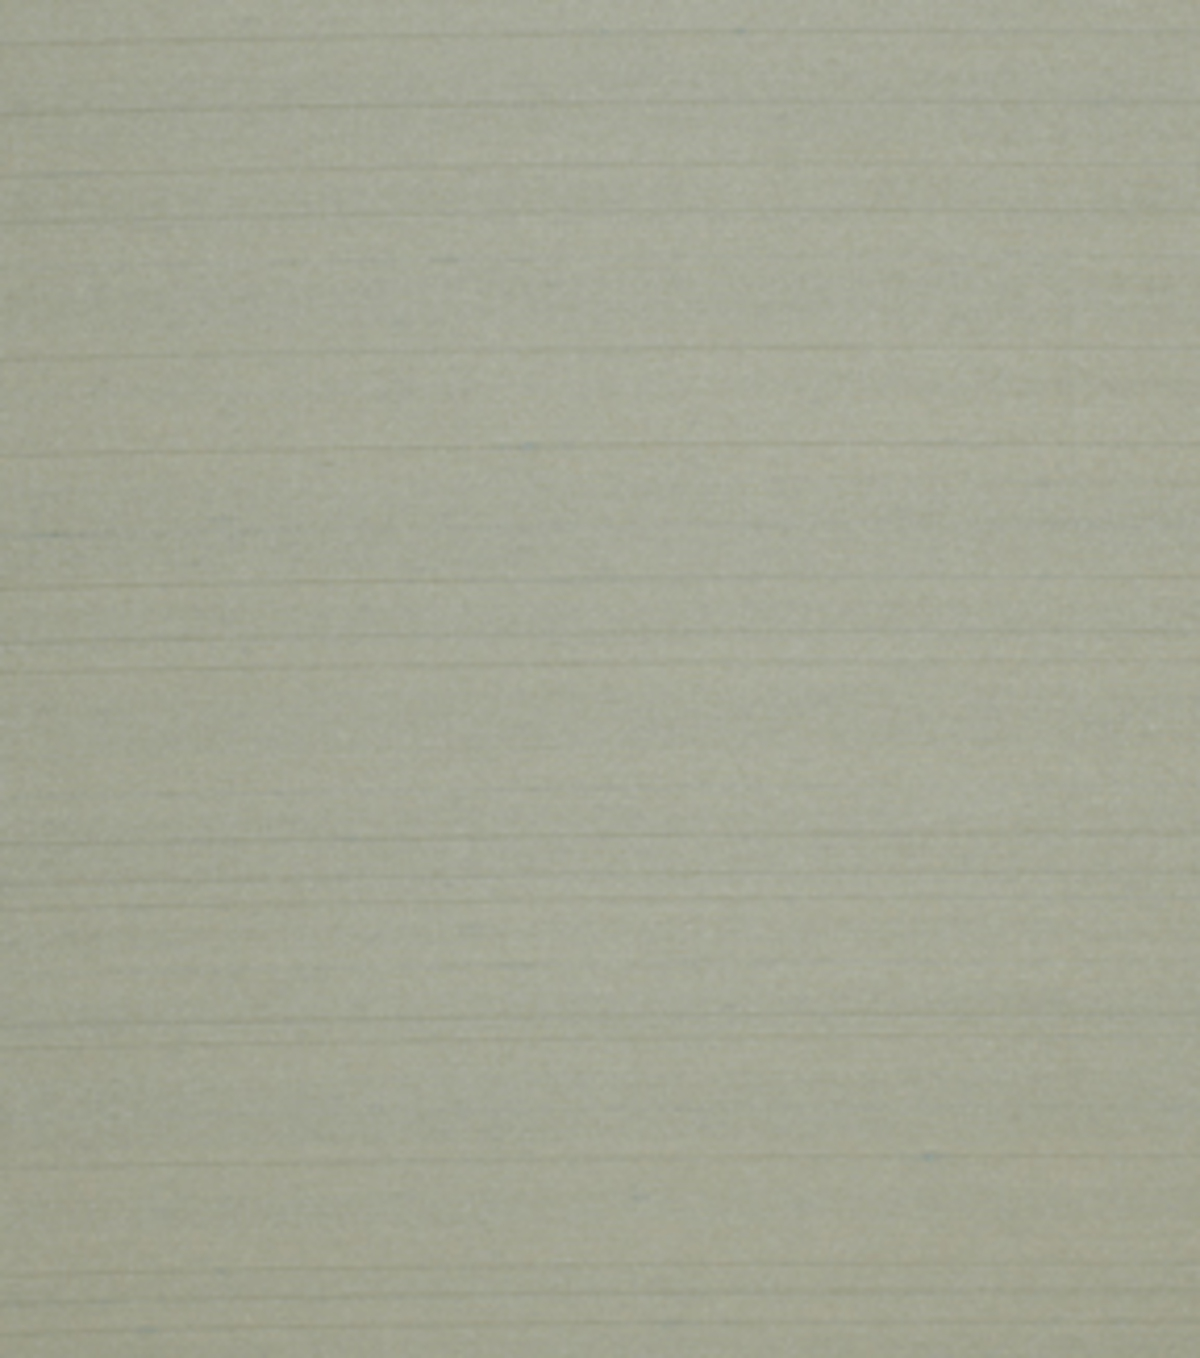 Home Decor 8\u0022x8\u0022 Fabric Swatch-Signature Series Bravo Duckegg